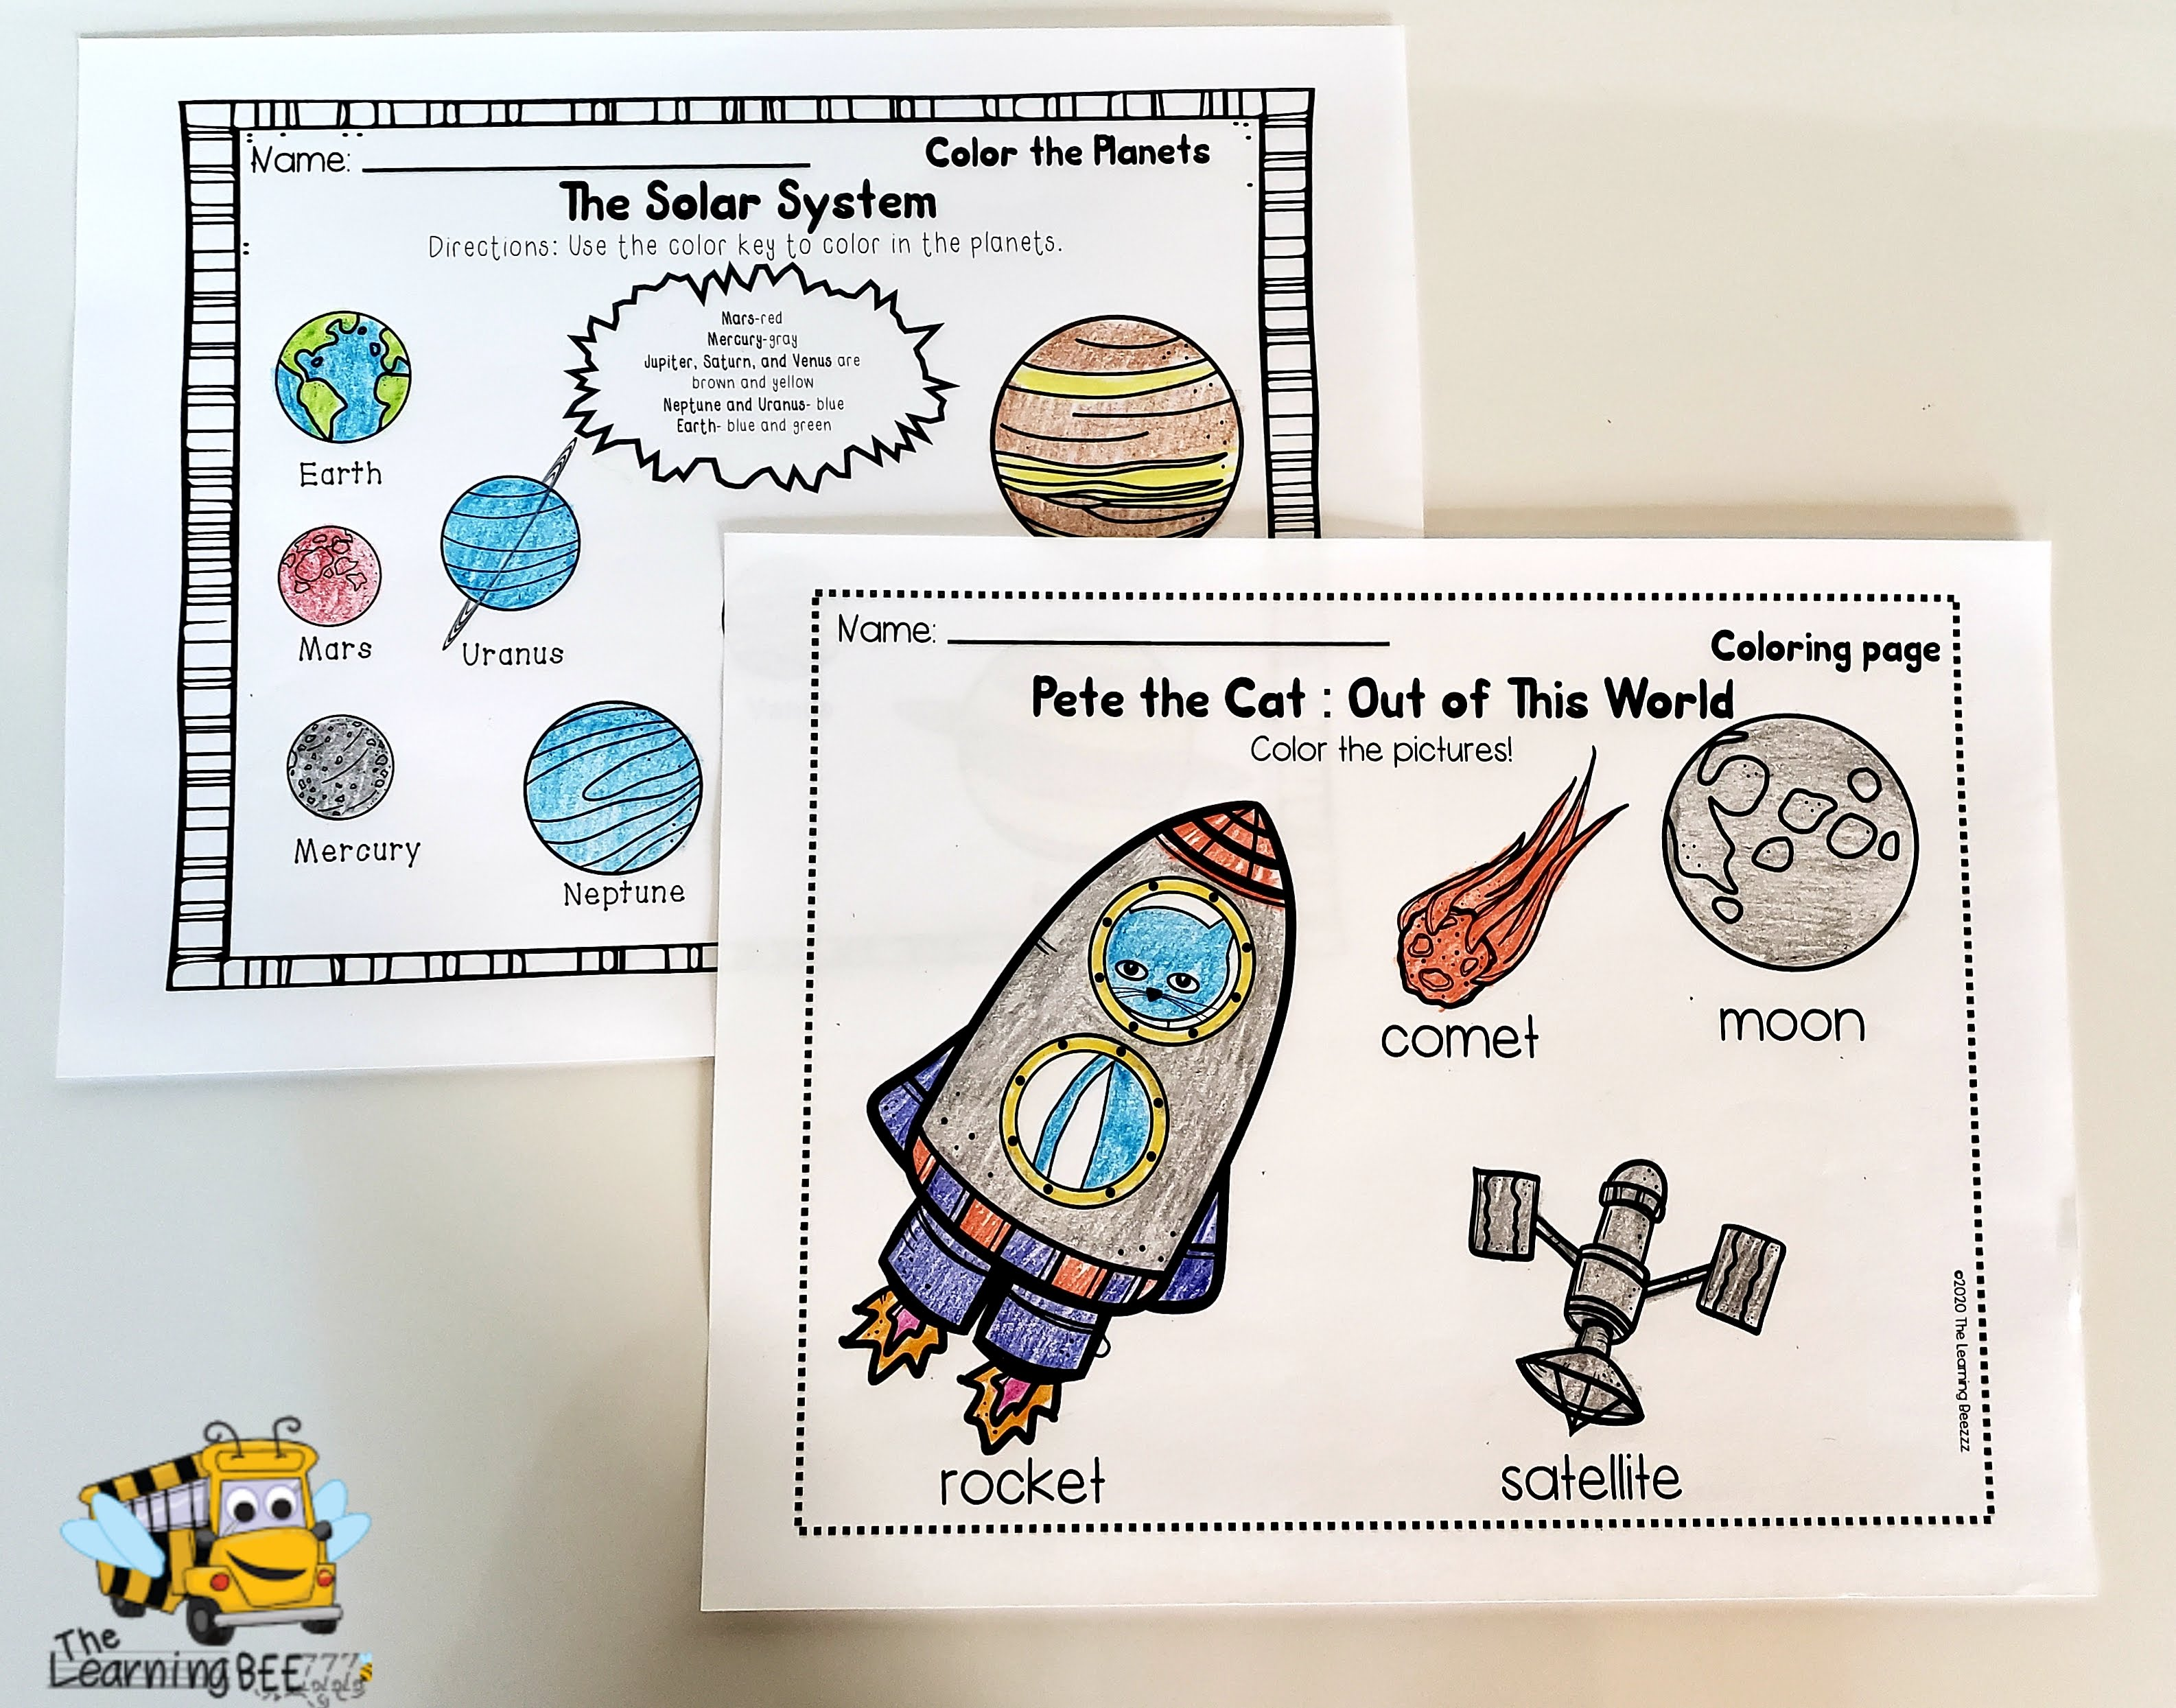 Pete The Cat Out Of This World The Learning Beezzz